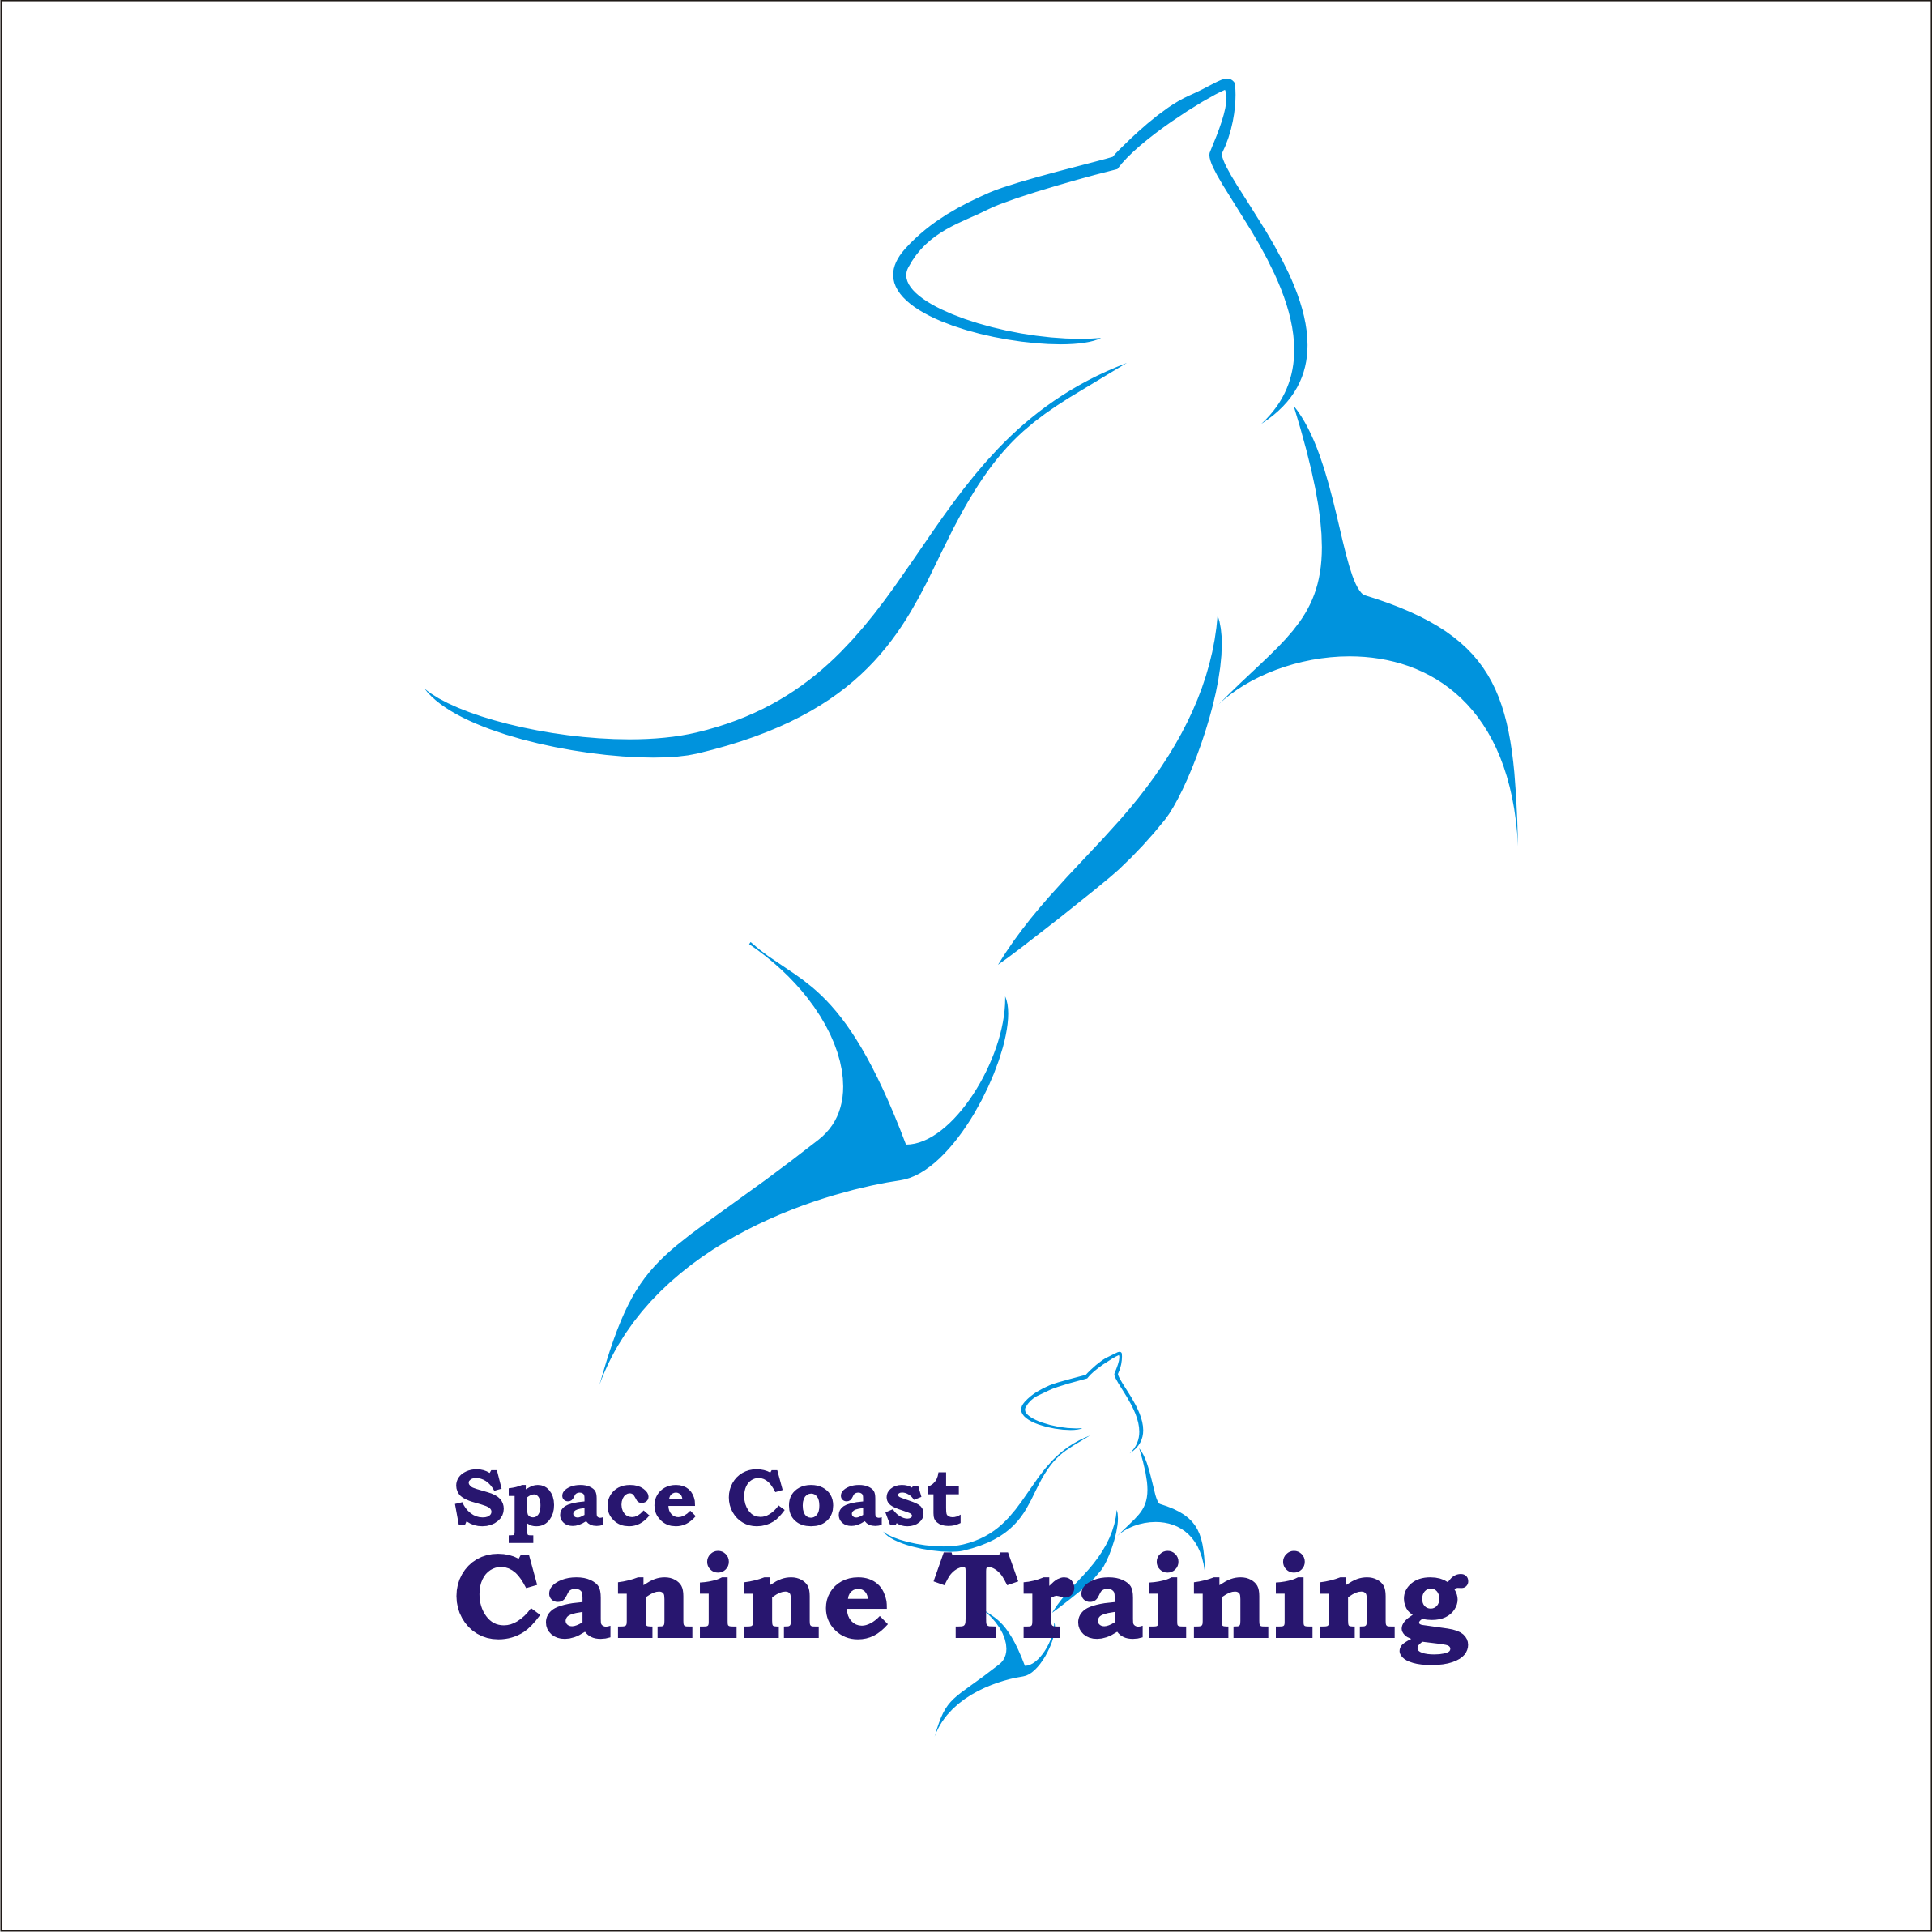 Logo Design by Private User - Entry No. 64 in the Logo Design Contest Creative Logo Design for Space Coast Canine Training.